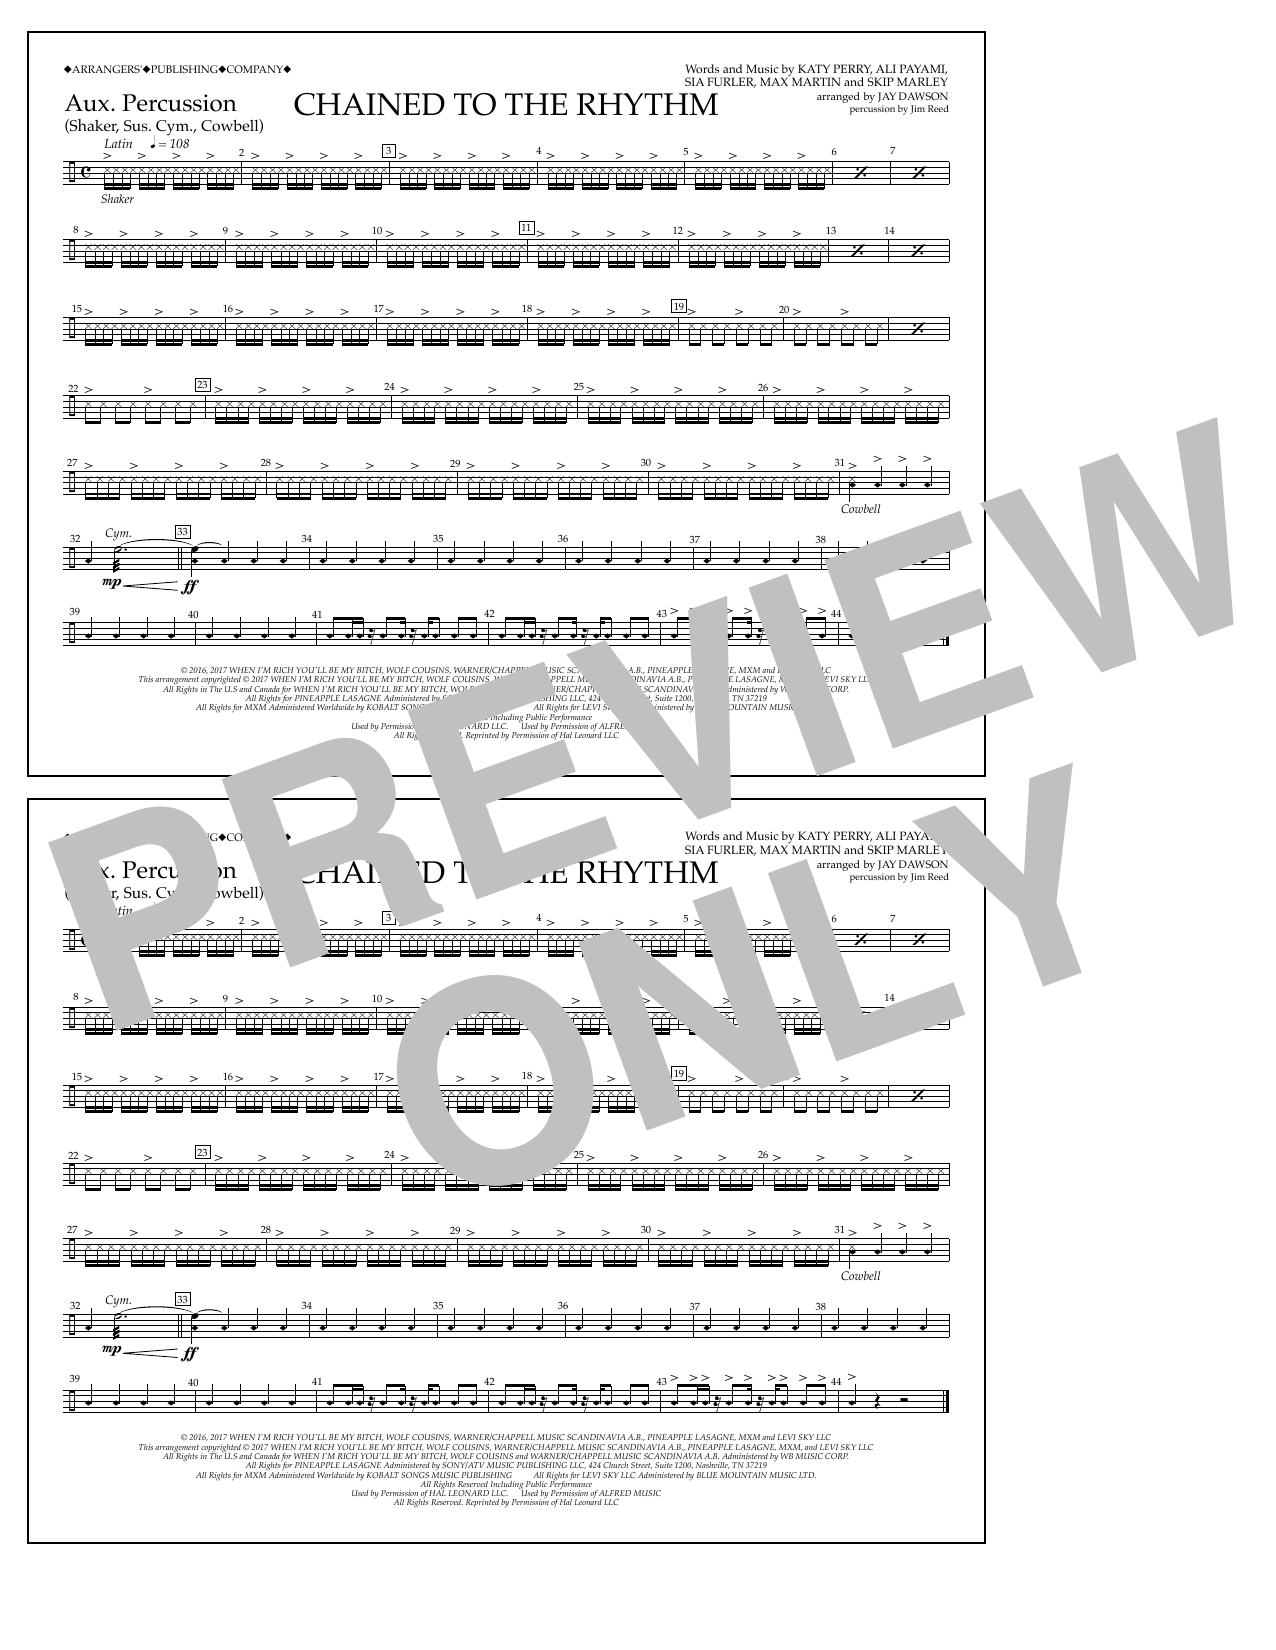 Chained to the Rhythm - Aux. Perc. Sheet Music